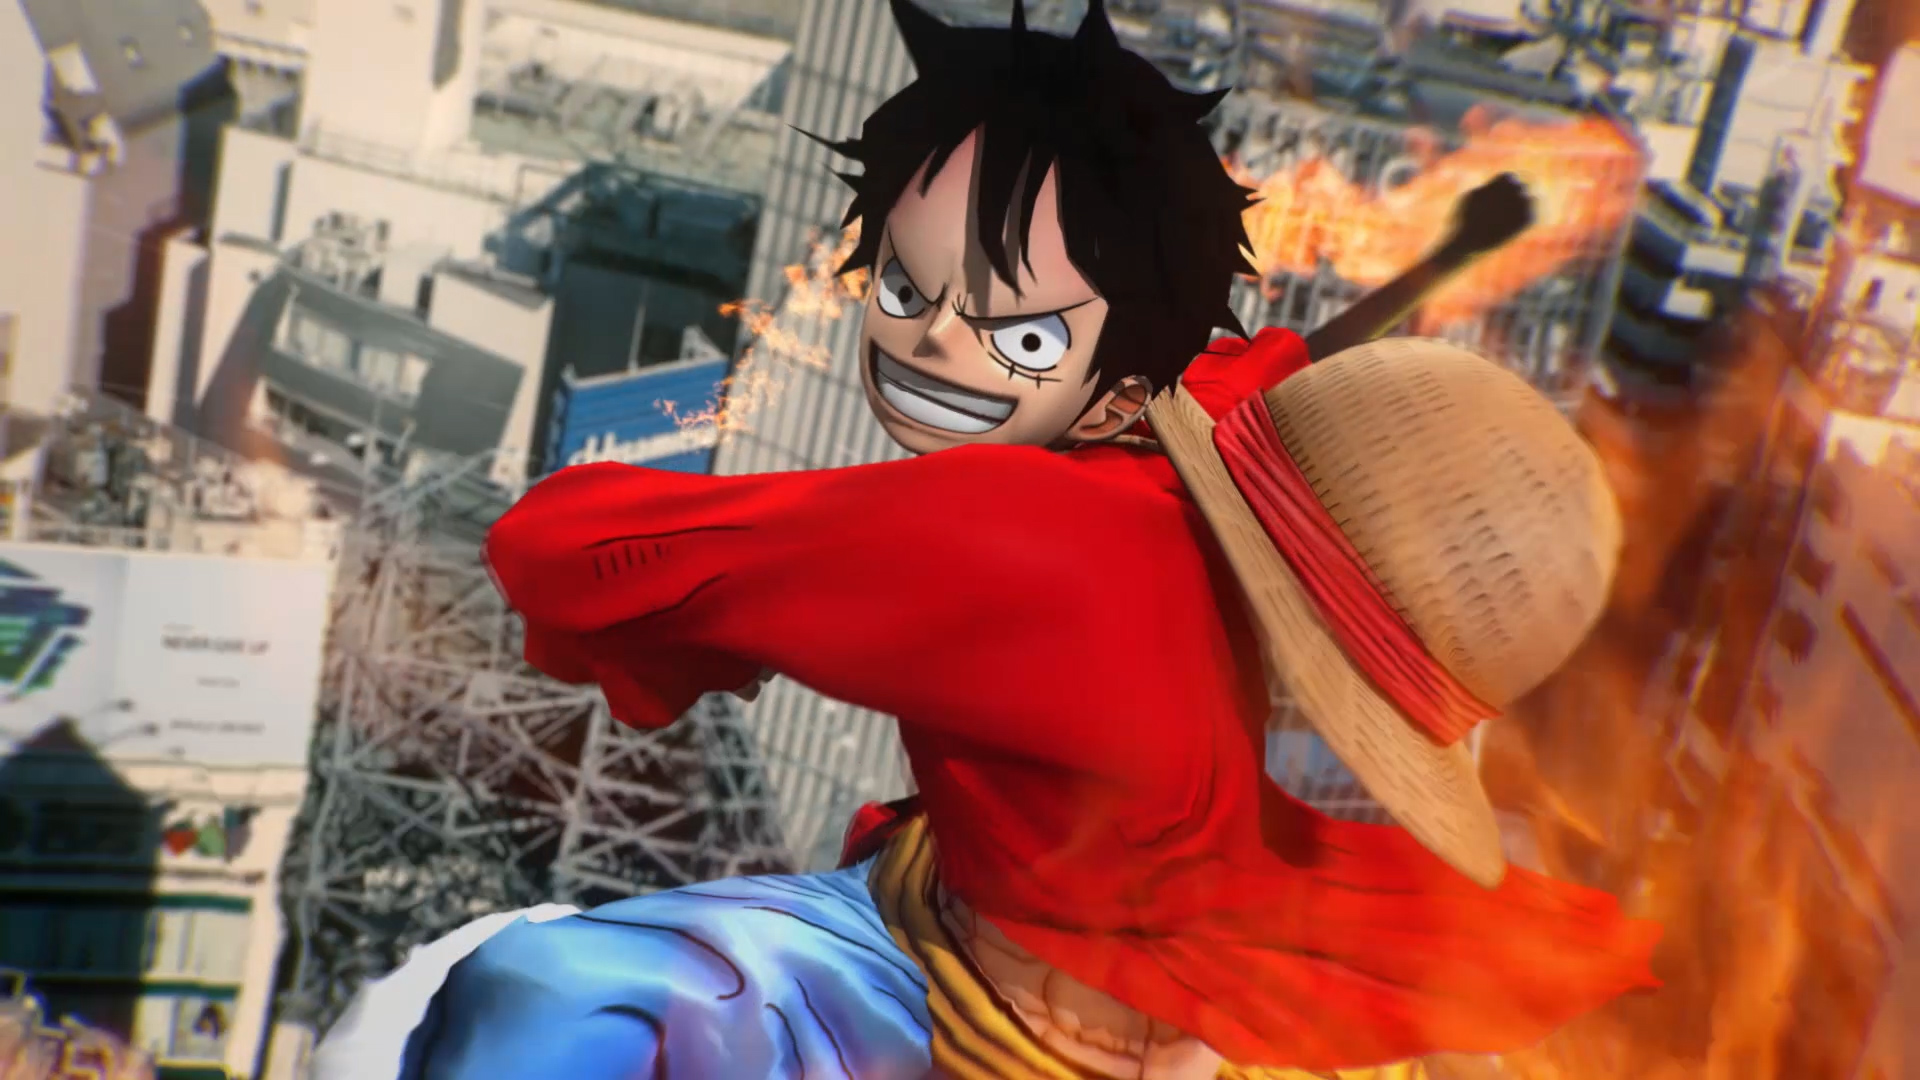 バンダイナムコエンターテインメント<br>PS4,PSVita「ONE PIECE BURNING BLOOD」 ウェブムービー